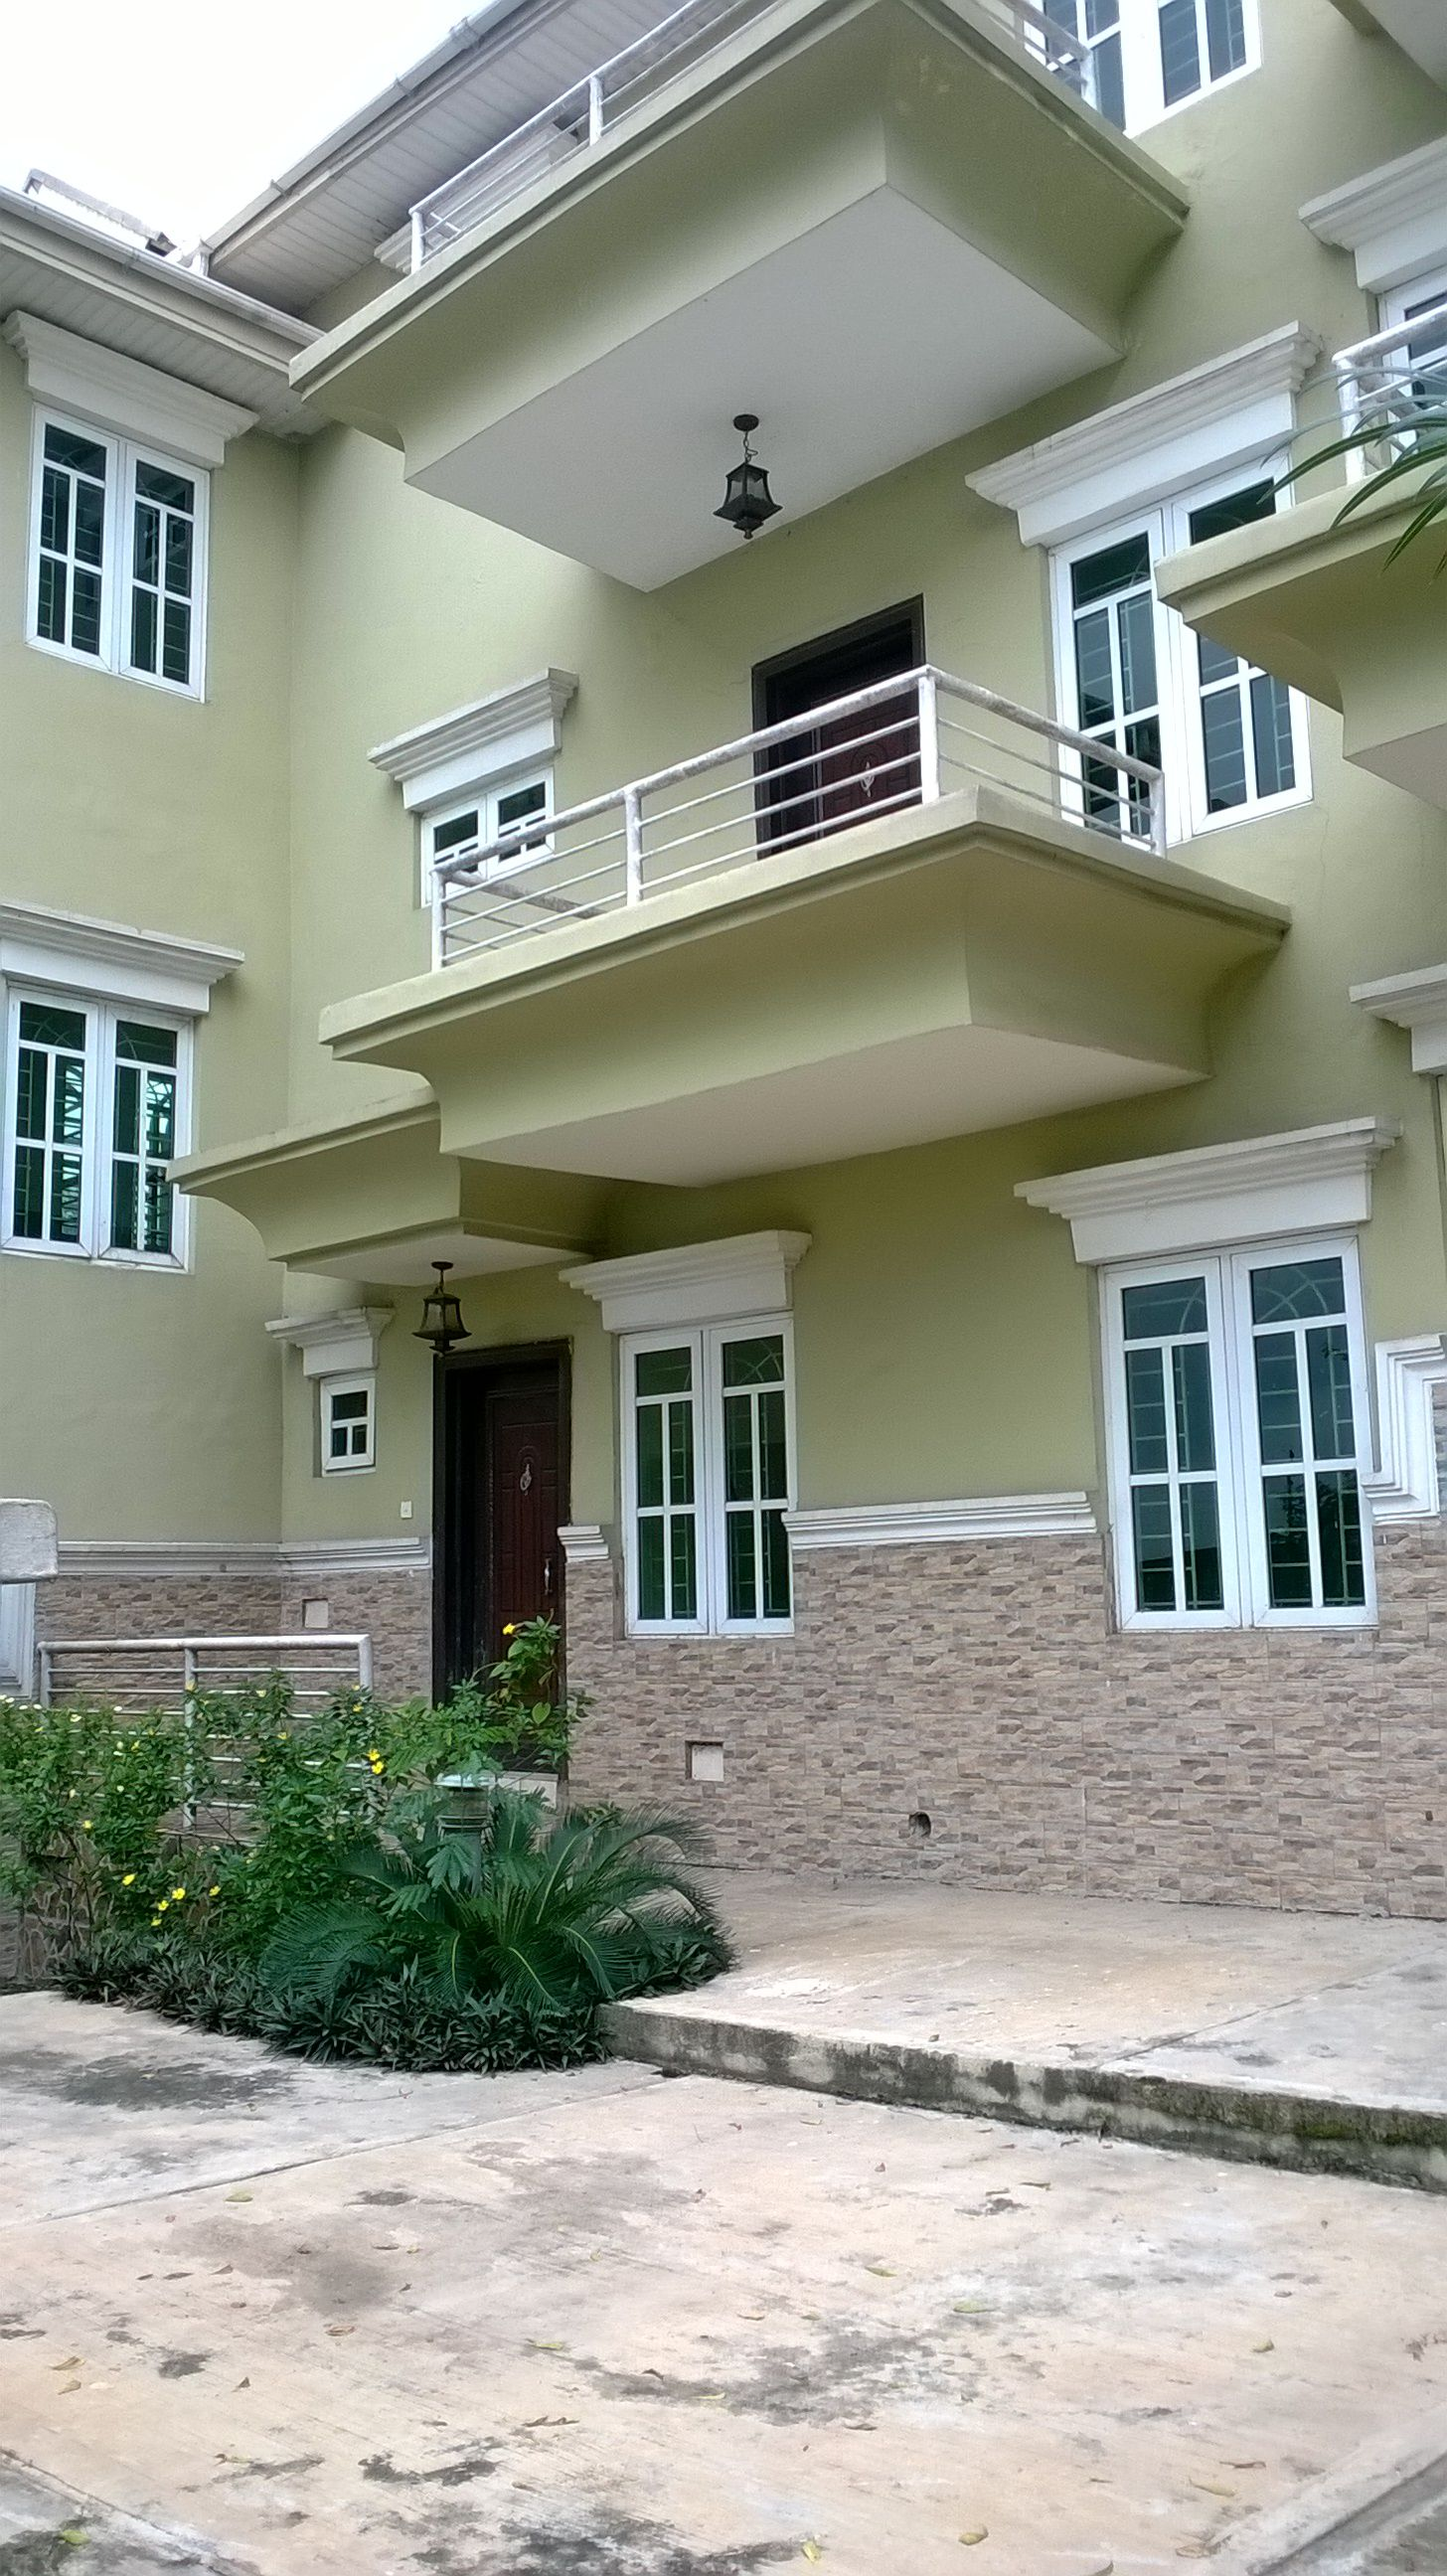 6 UNITS OF 4 BEDROOMS TERRACE HOUSES AT OMOLE PHASE 1